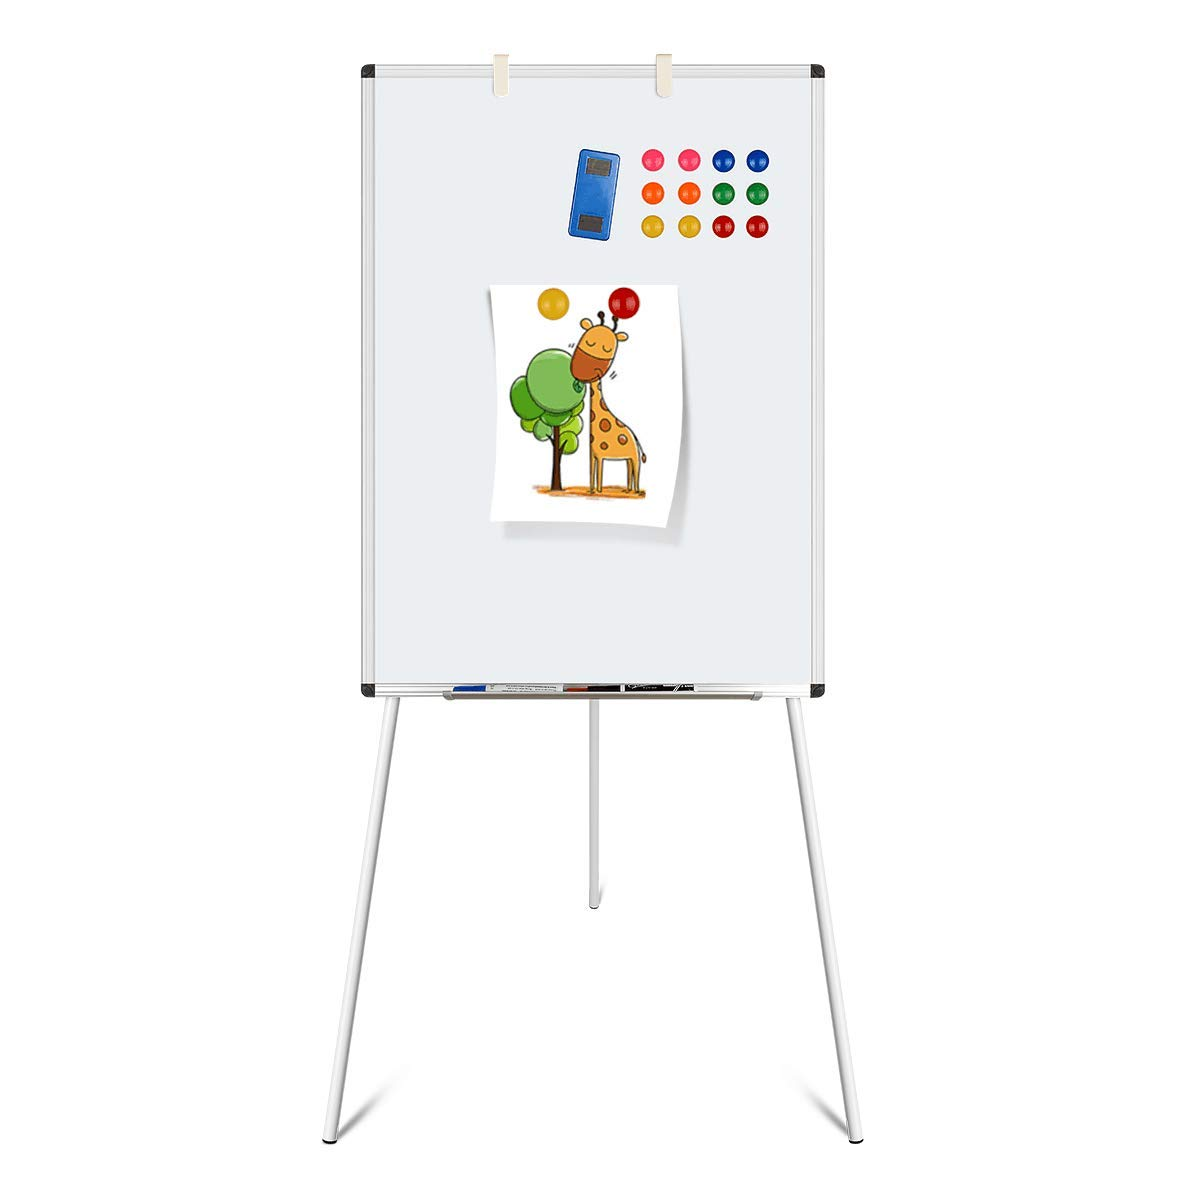 Dry Erase Board, Magnetic Whiteboard with Tripod